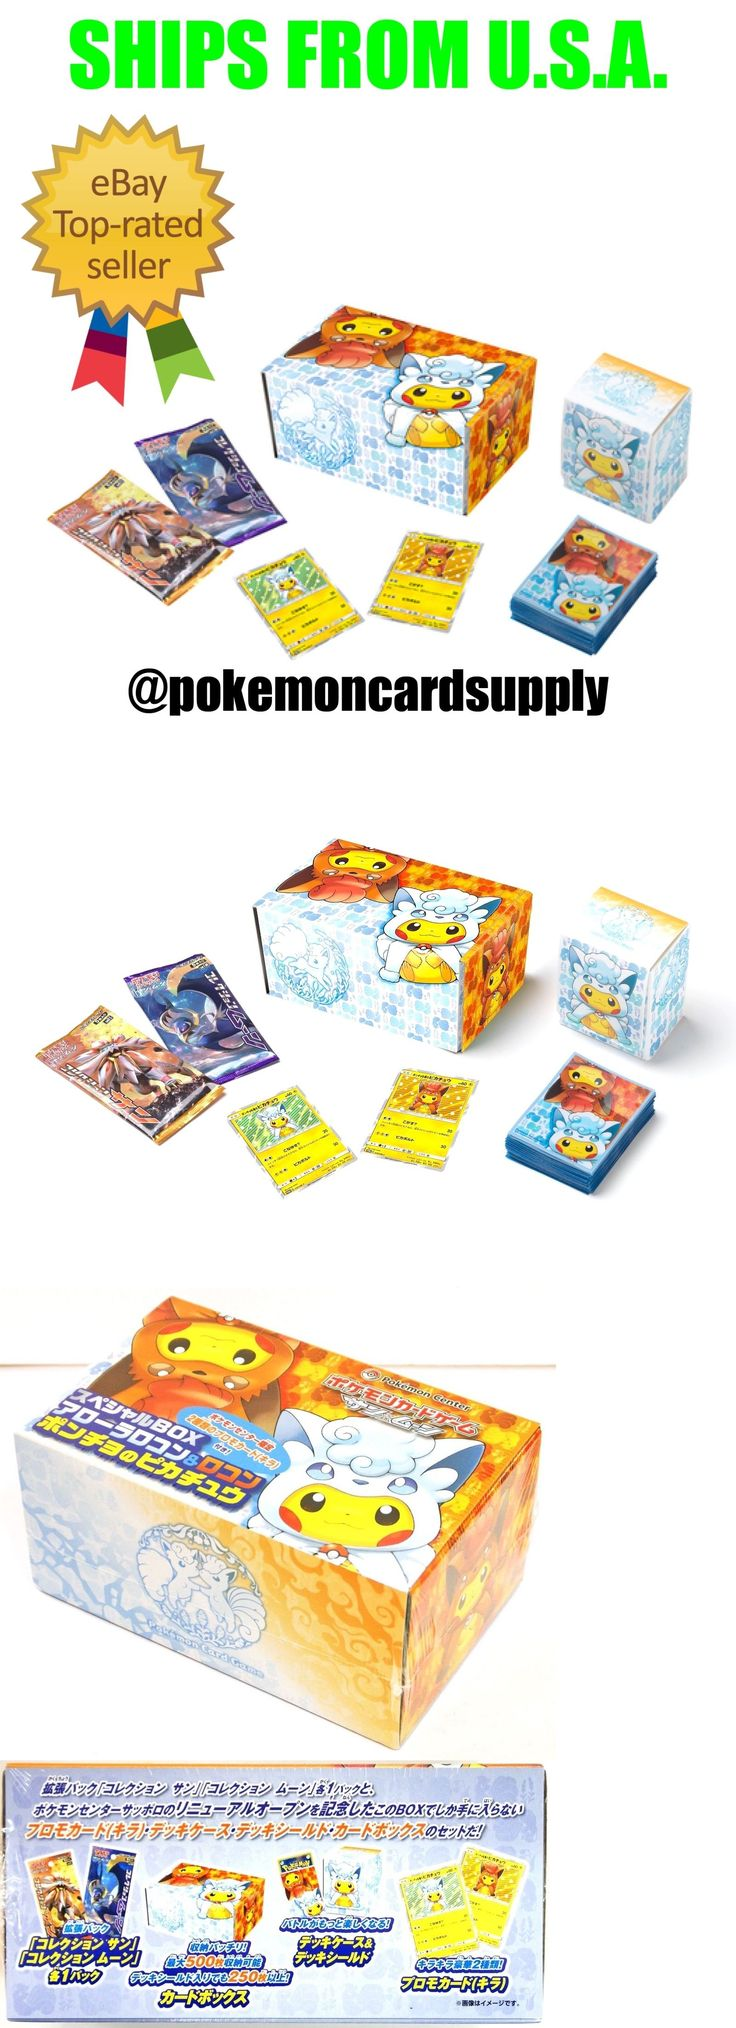 Pok mon Sealed Booster Packs 4301: Pokemon Card Game Sun And Moon Alola Vulpix Pikachu Poncho Cosplay Sealed Box Set! -> BUY IT NOW ONLY: $39.95 on eBay!